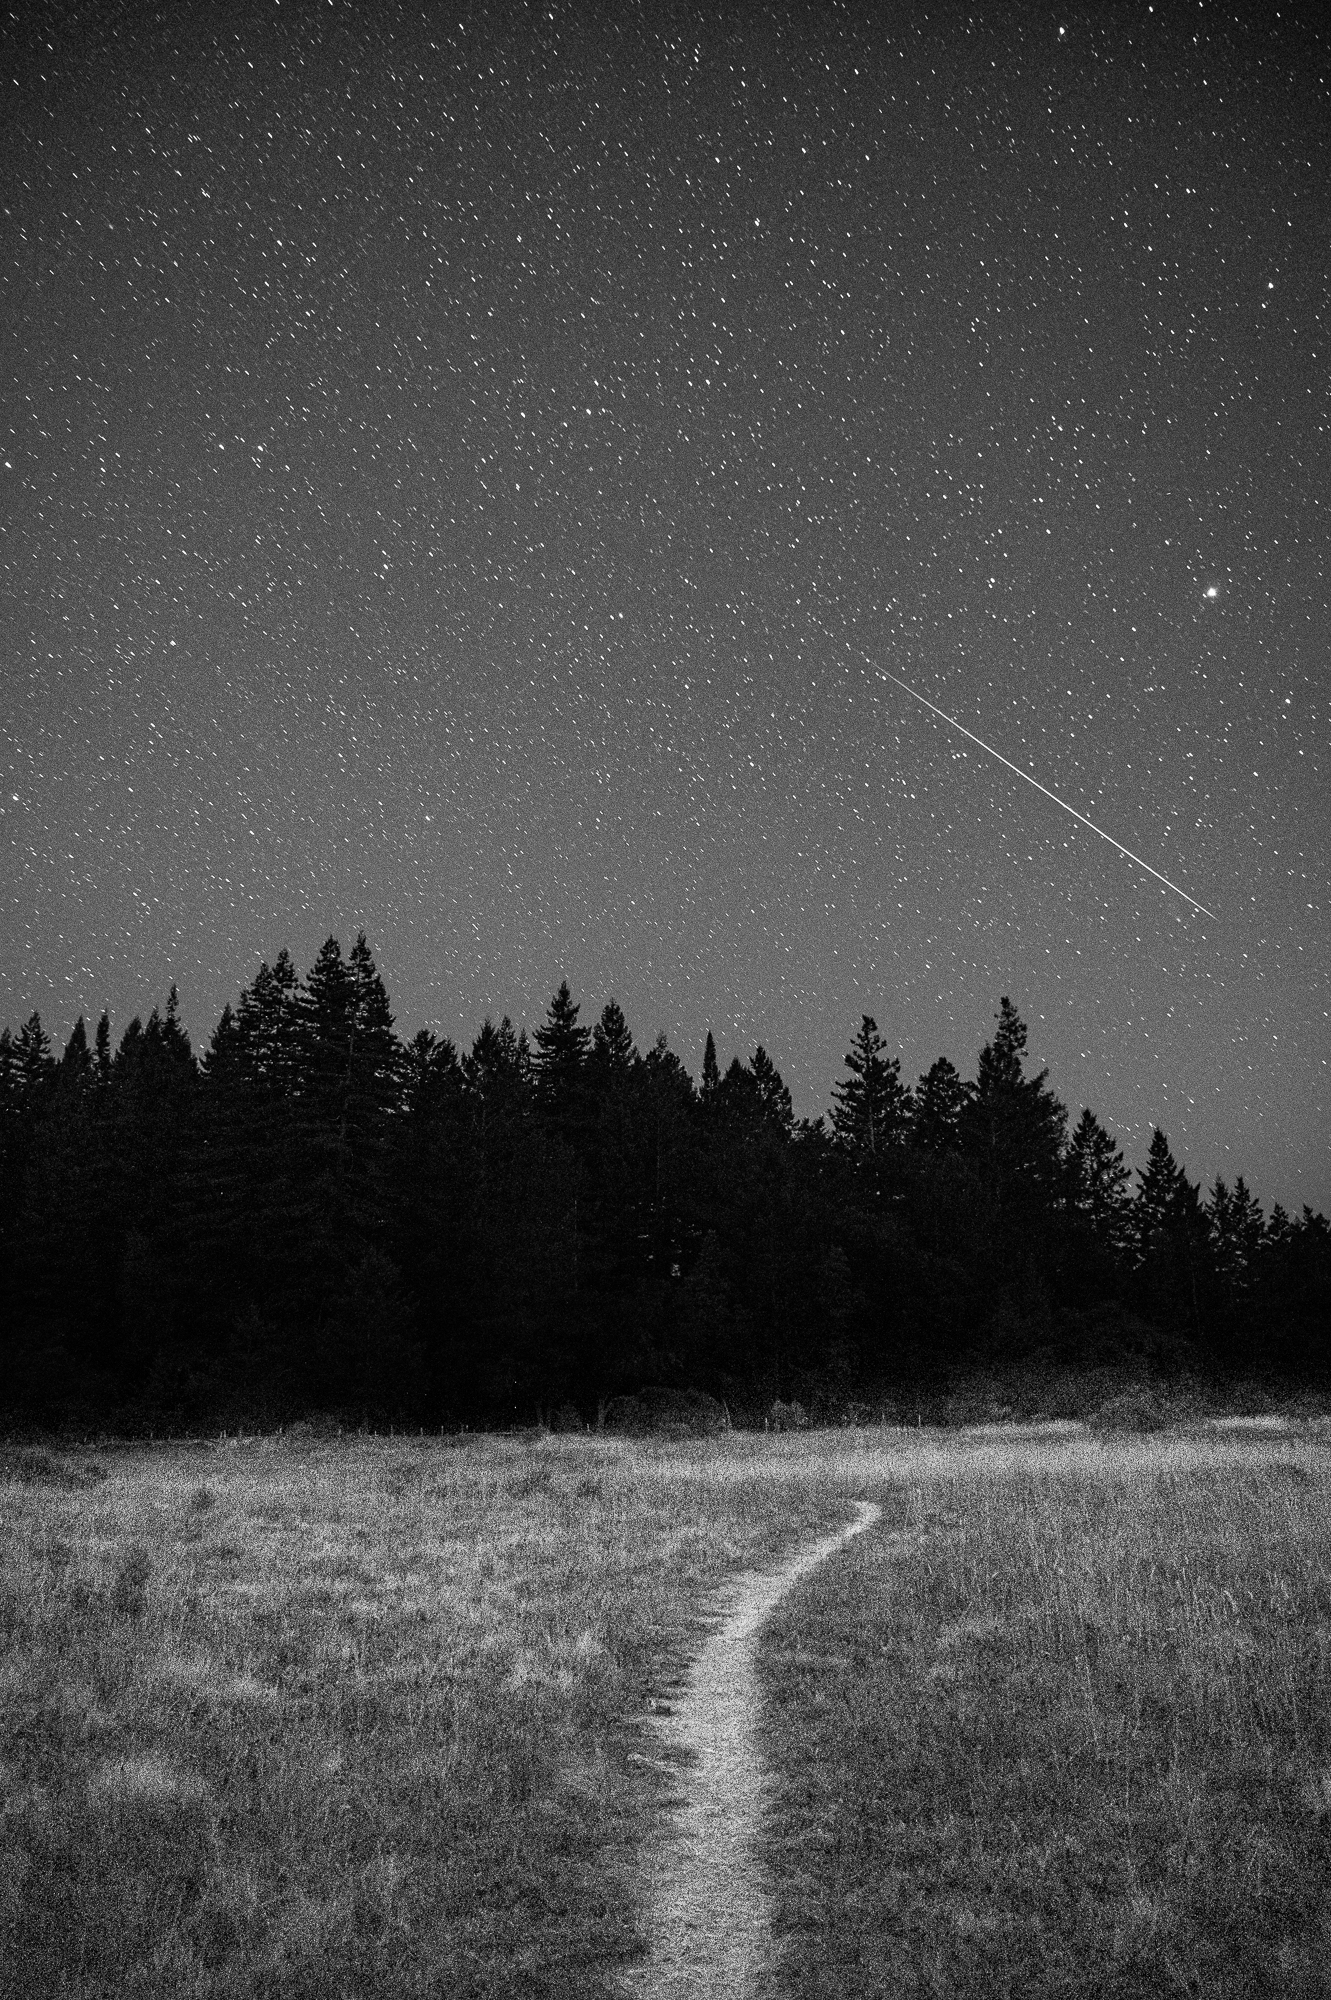 A black and white image of a meteor passing through the night sky over a path cutting through a field and lined with trees.